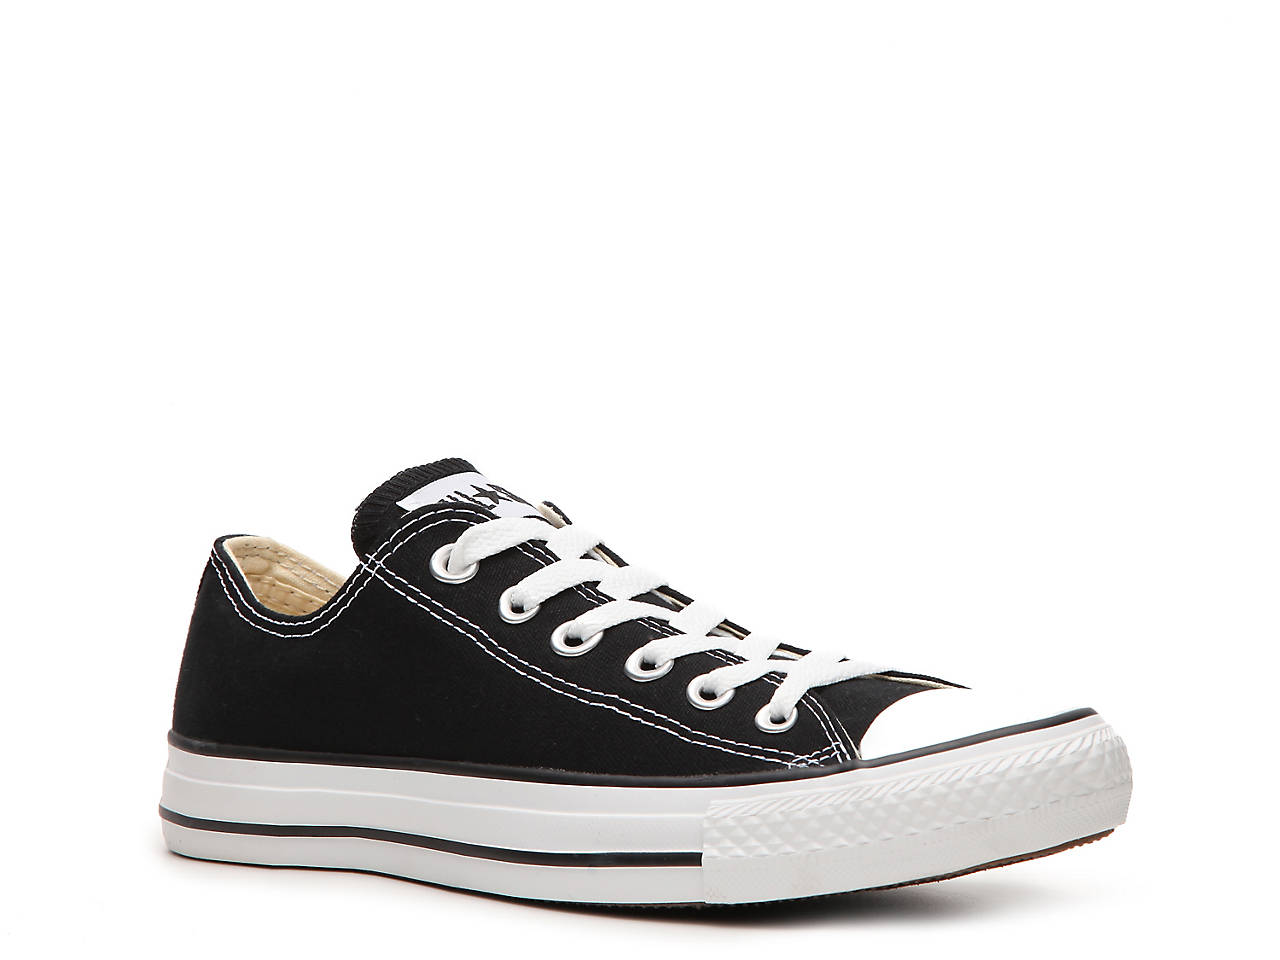 Converse Chuck Taylor All Star Sneaker - Women s Women s Shoes  2b743aaa4